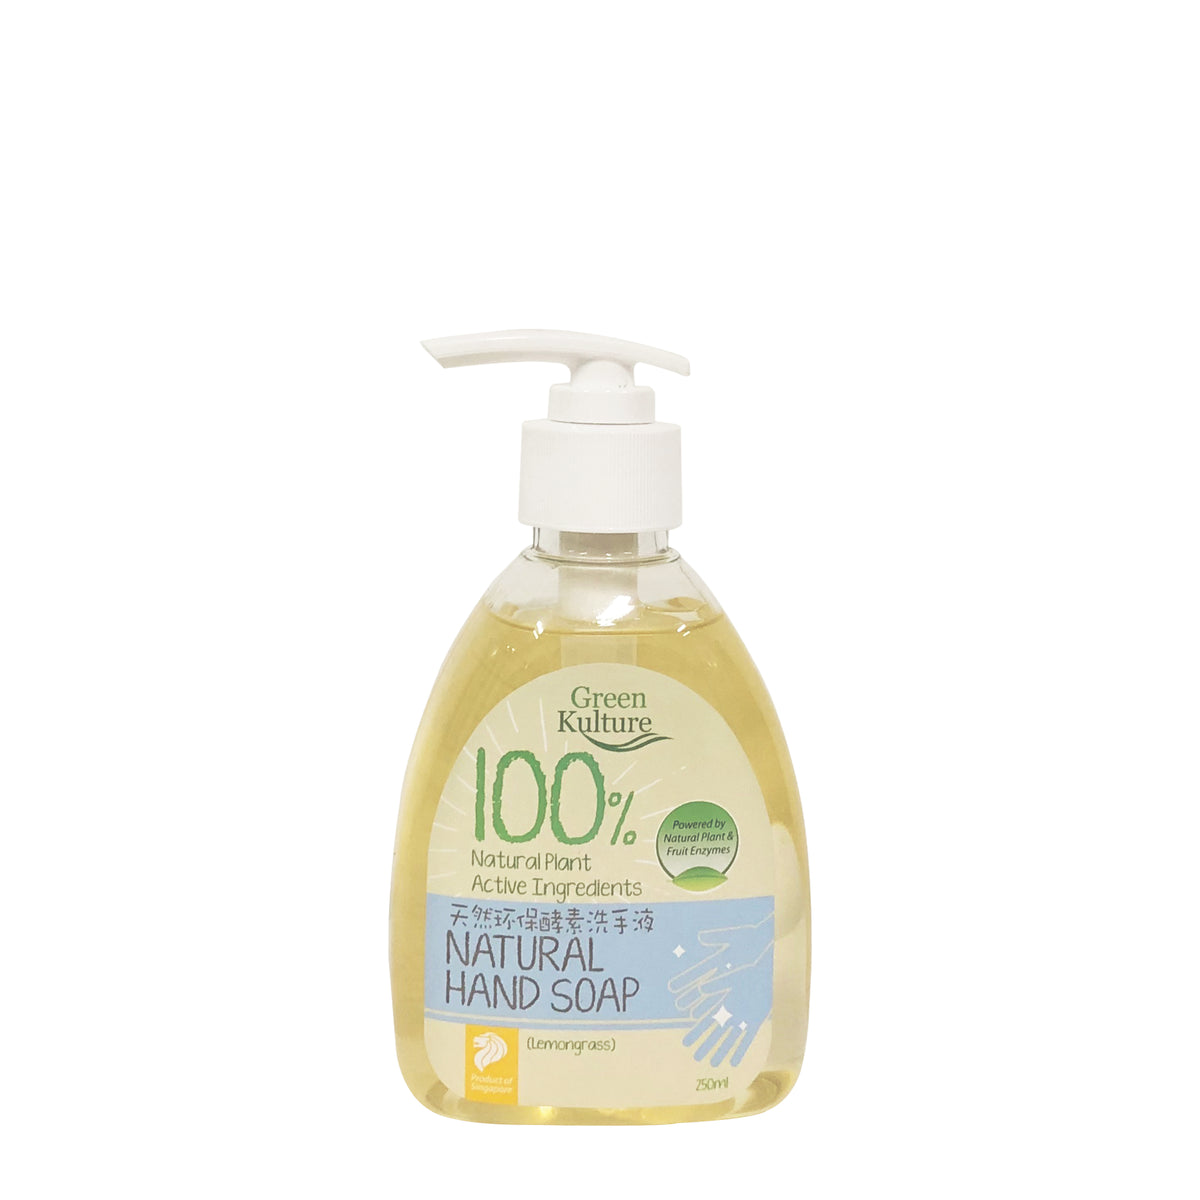 Natural Hand Soap - (250ml)